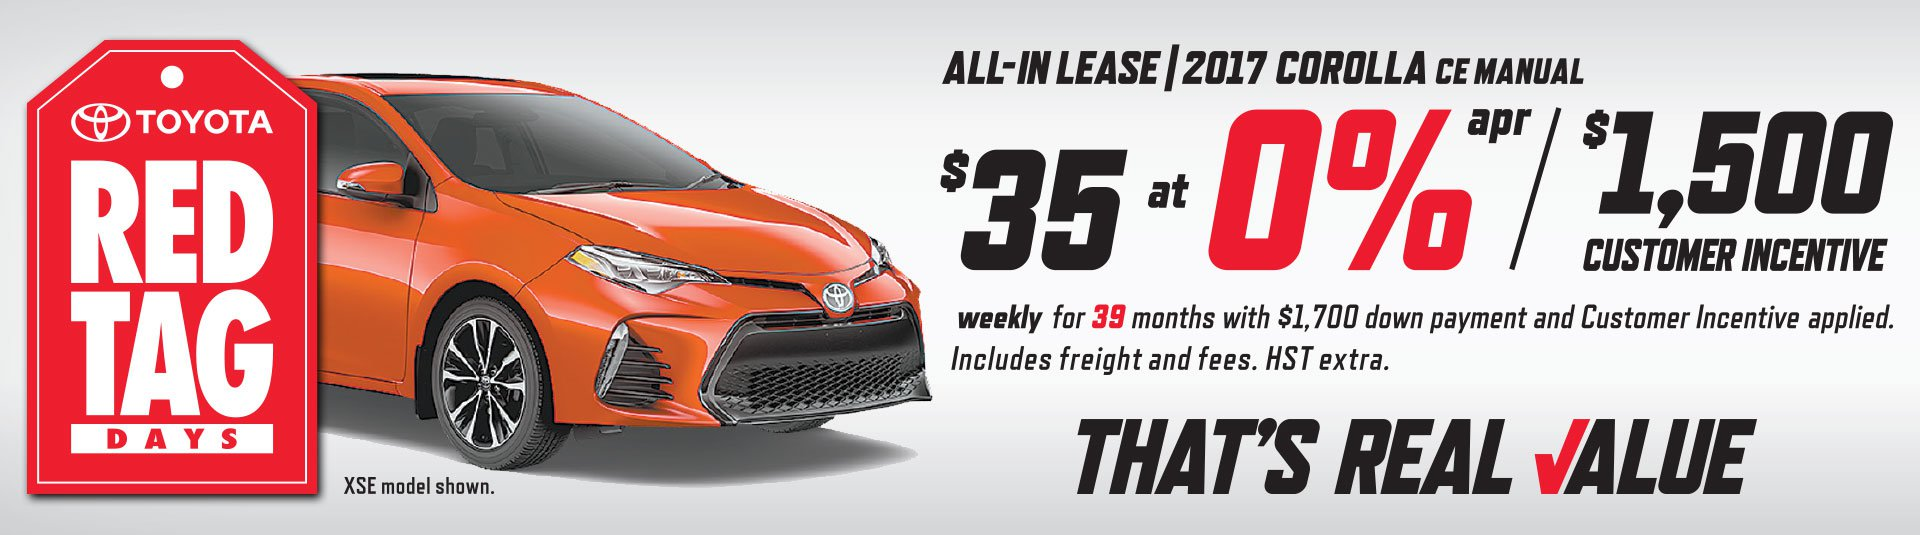 2017 Corolla Lease Offer